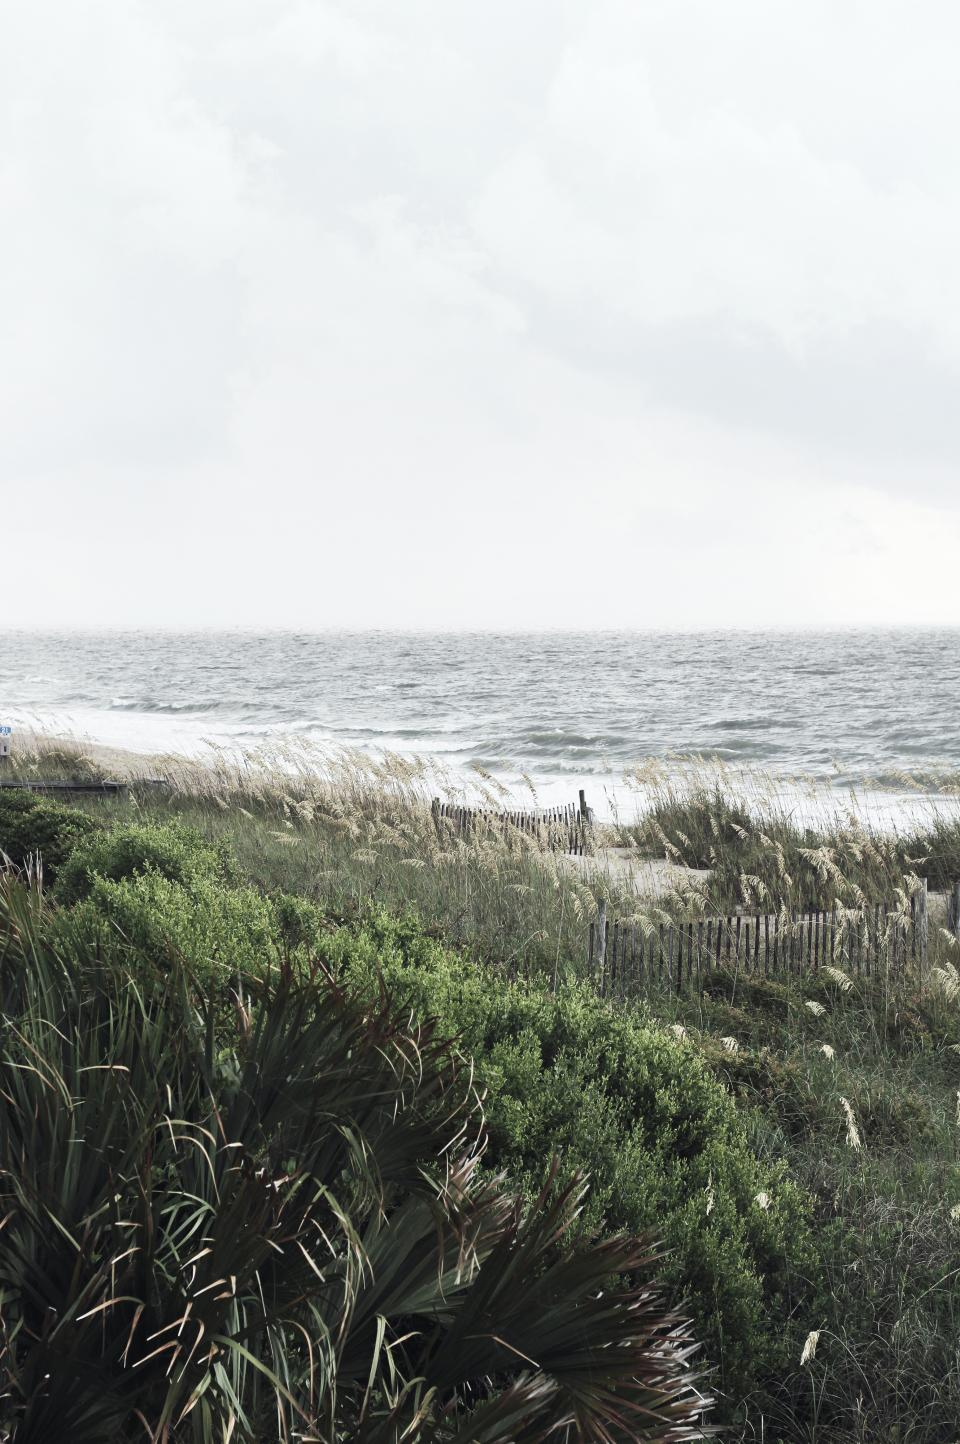 sea ocean water waves nature green grass nature coast outdoor horizon